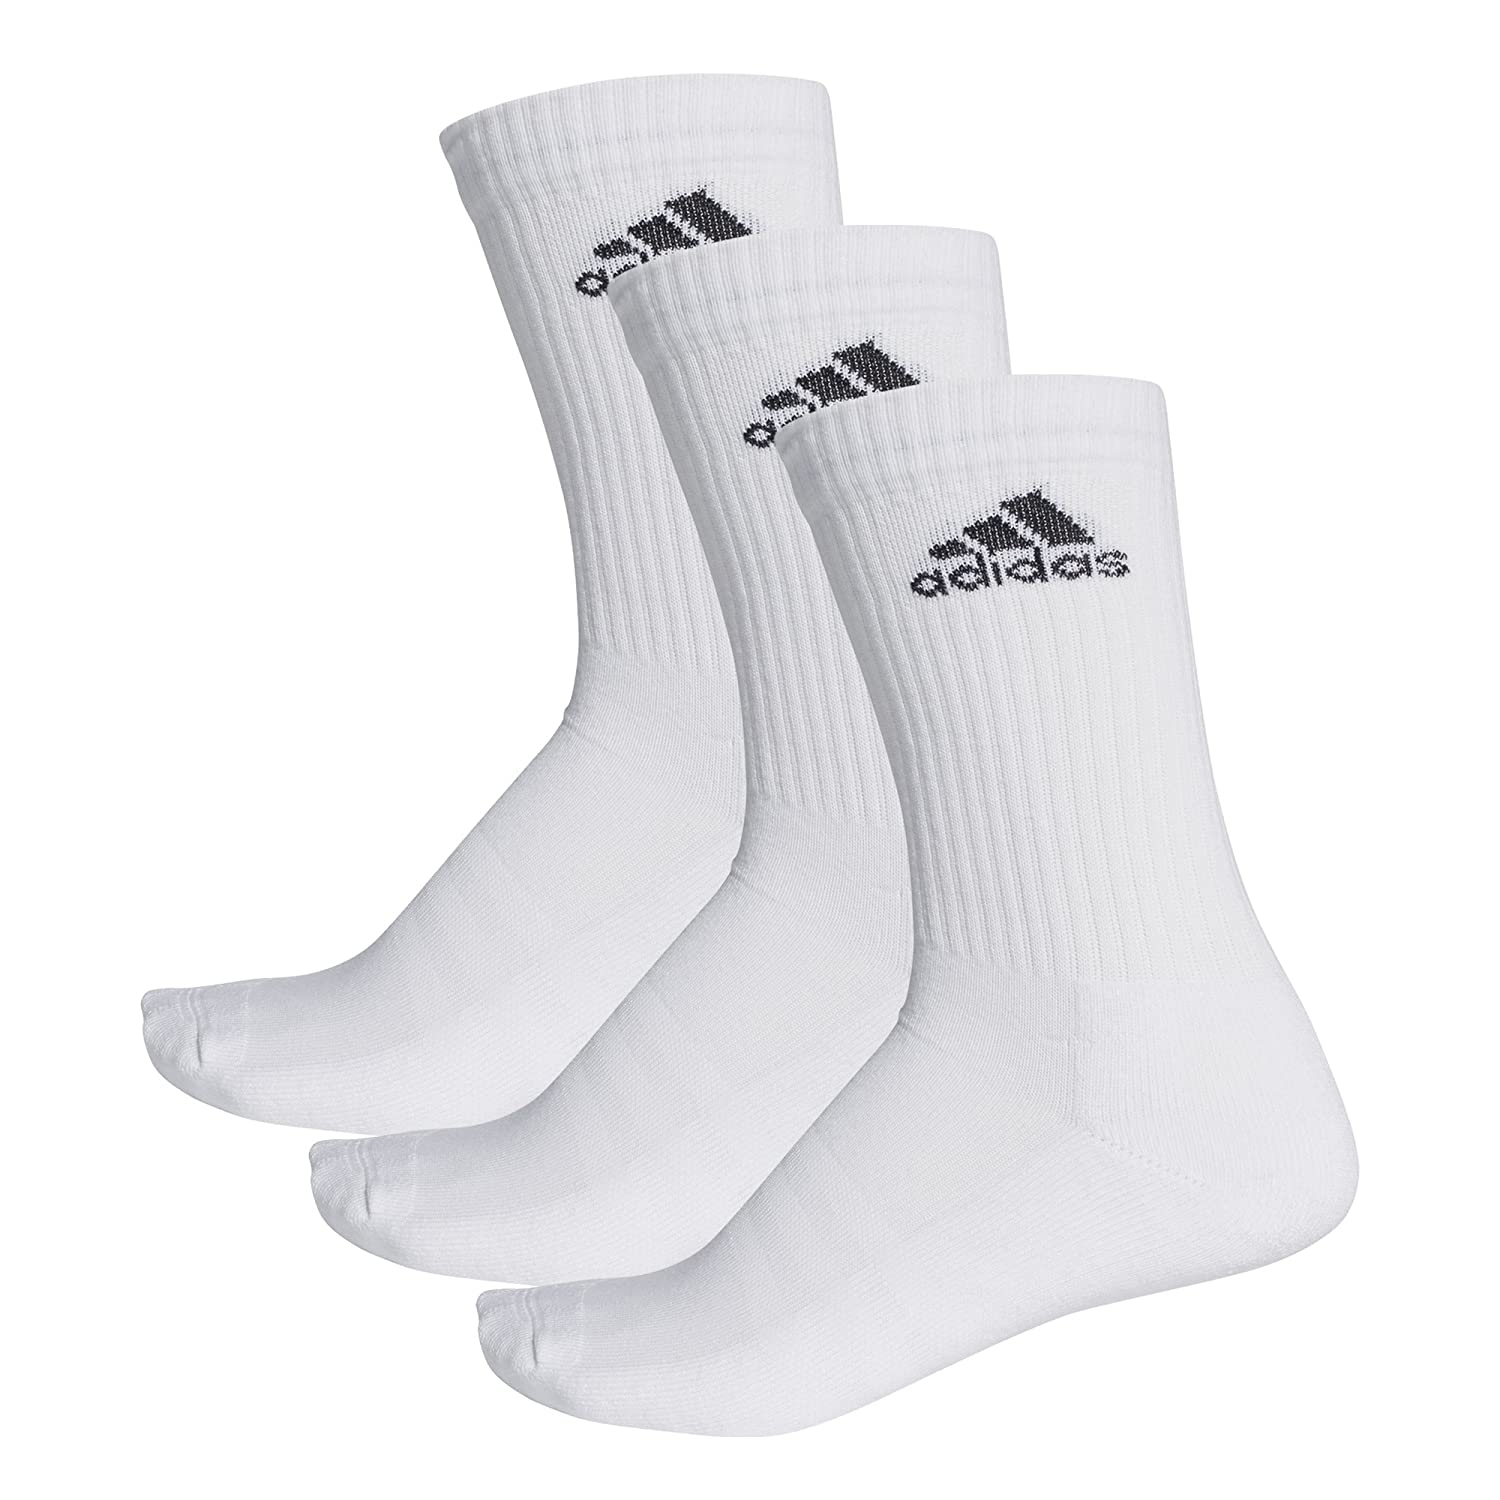 adidas Unisex 3-Stripes Performance Crew Socks, White/White/Black, 12-14 AA2297